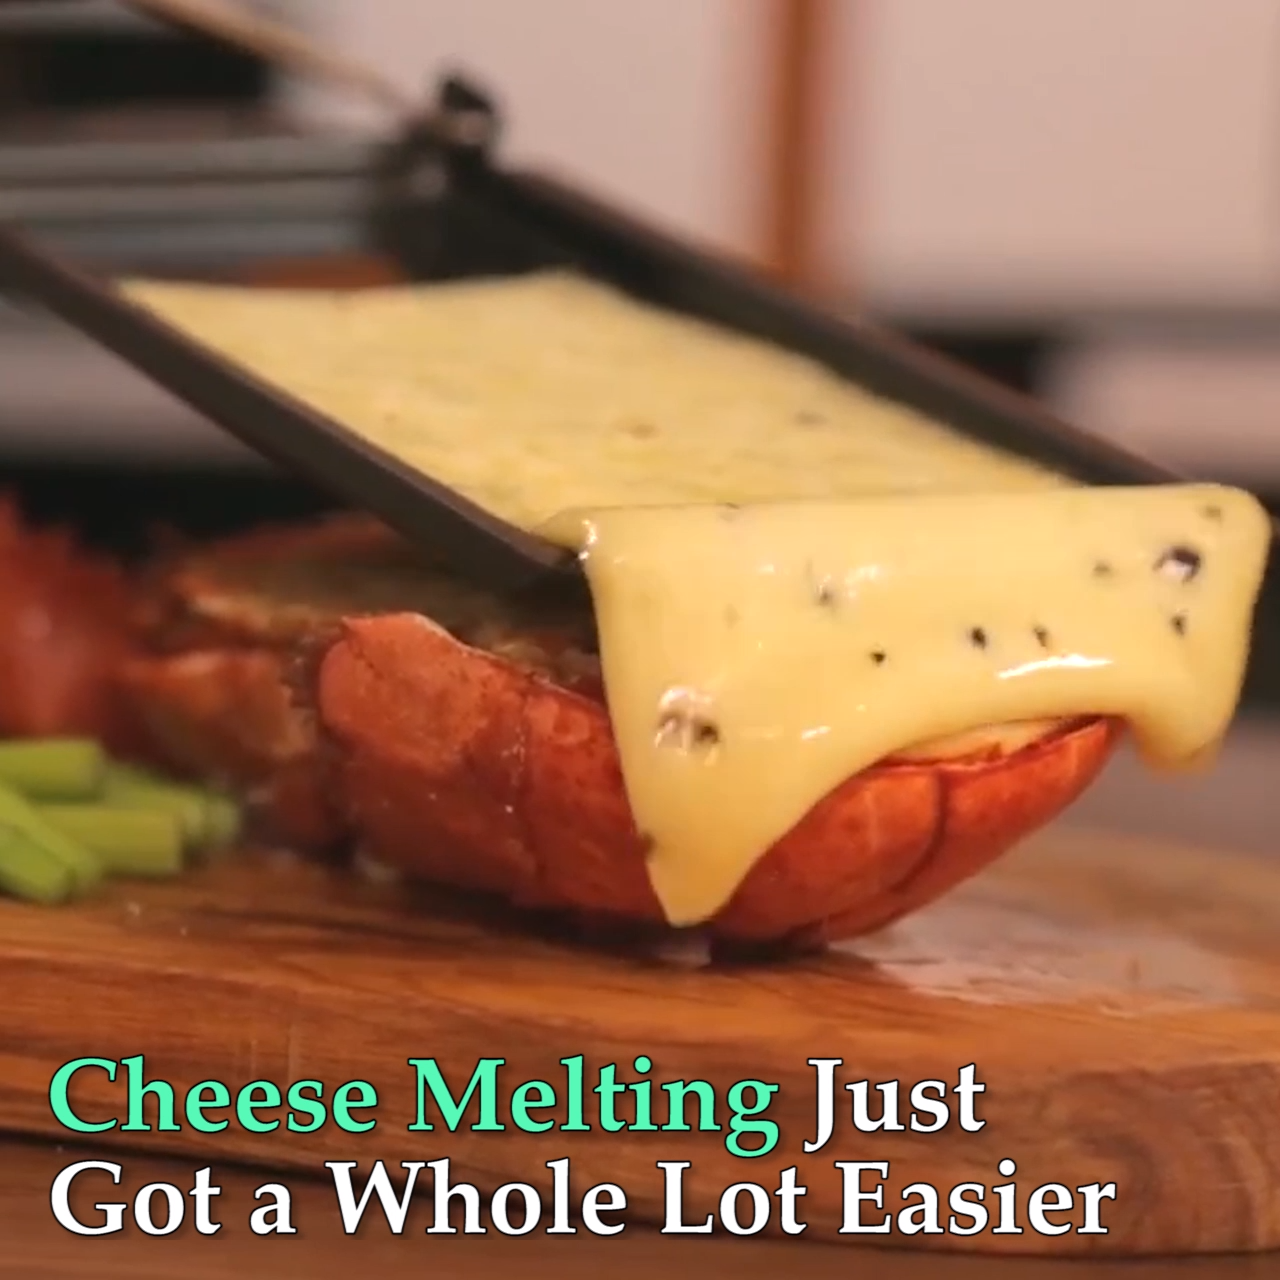 Oak Cheese Raclette Cheese, Food, Cooking gadgets, Food hacks, Cooking recipes, Kitchen gadgets - O